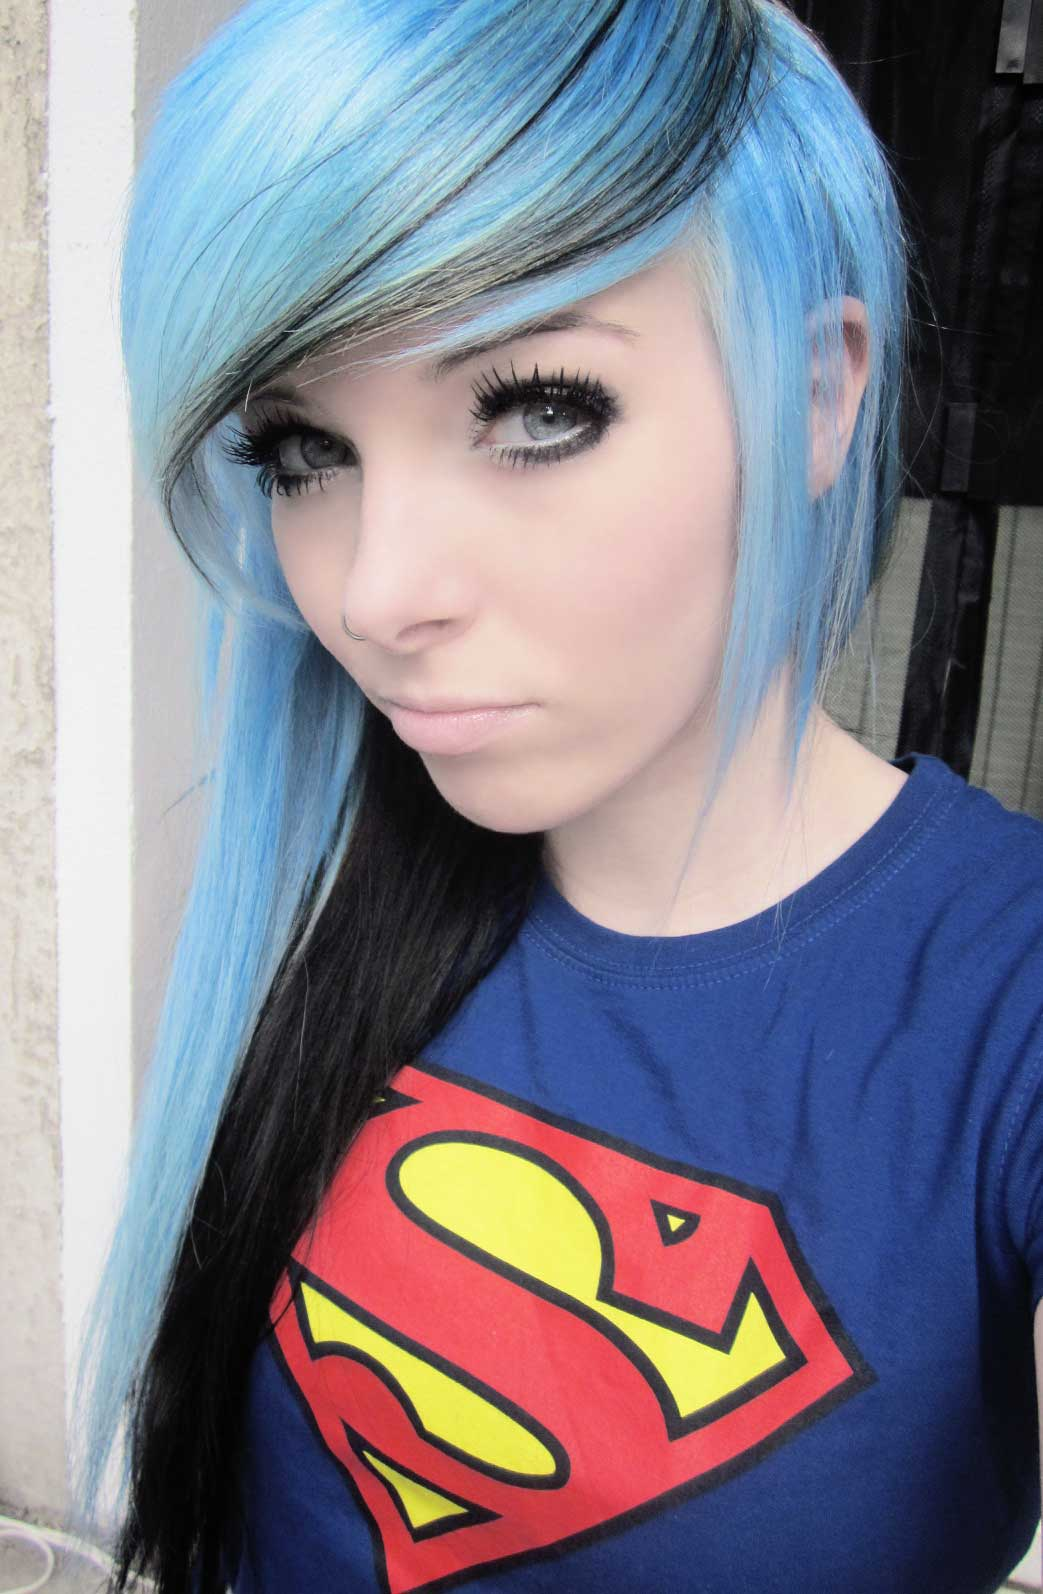 How to Get Advantageous With an Emo Girl - Top and Trend